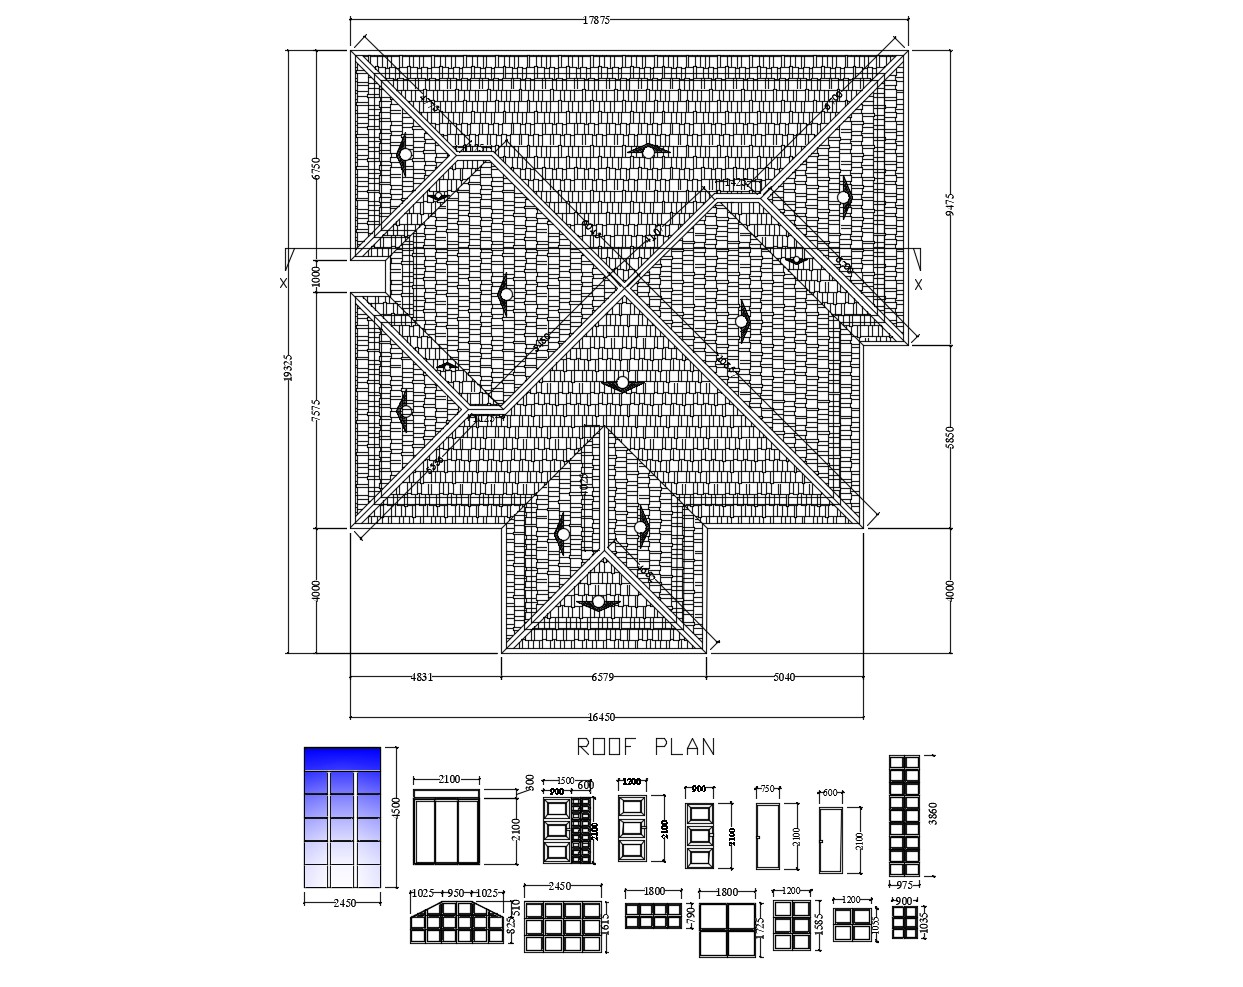 House roof plan in DWG file